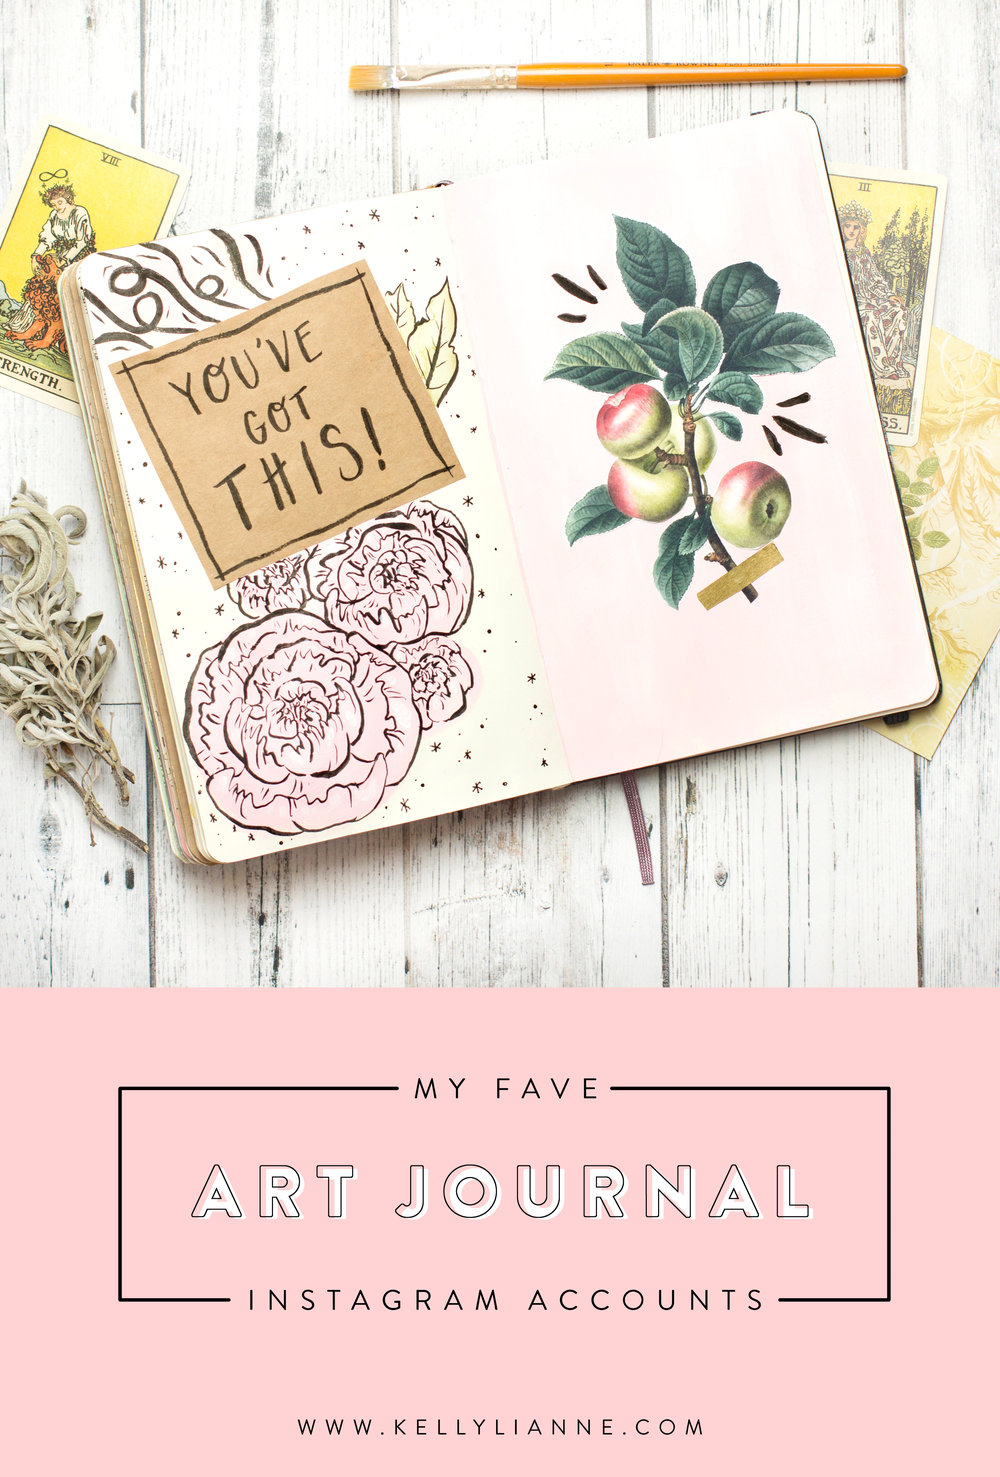 my fave art journal instagram accounts pinterest graphic.jpg